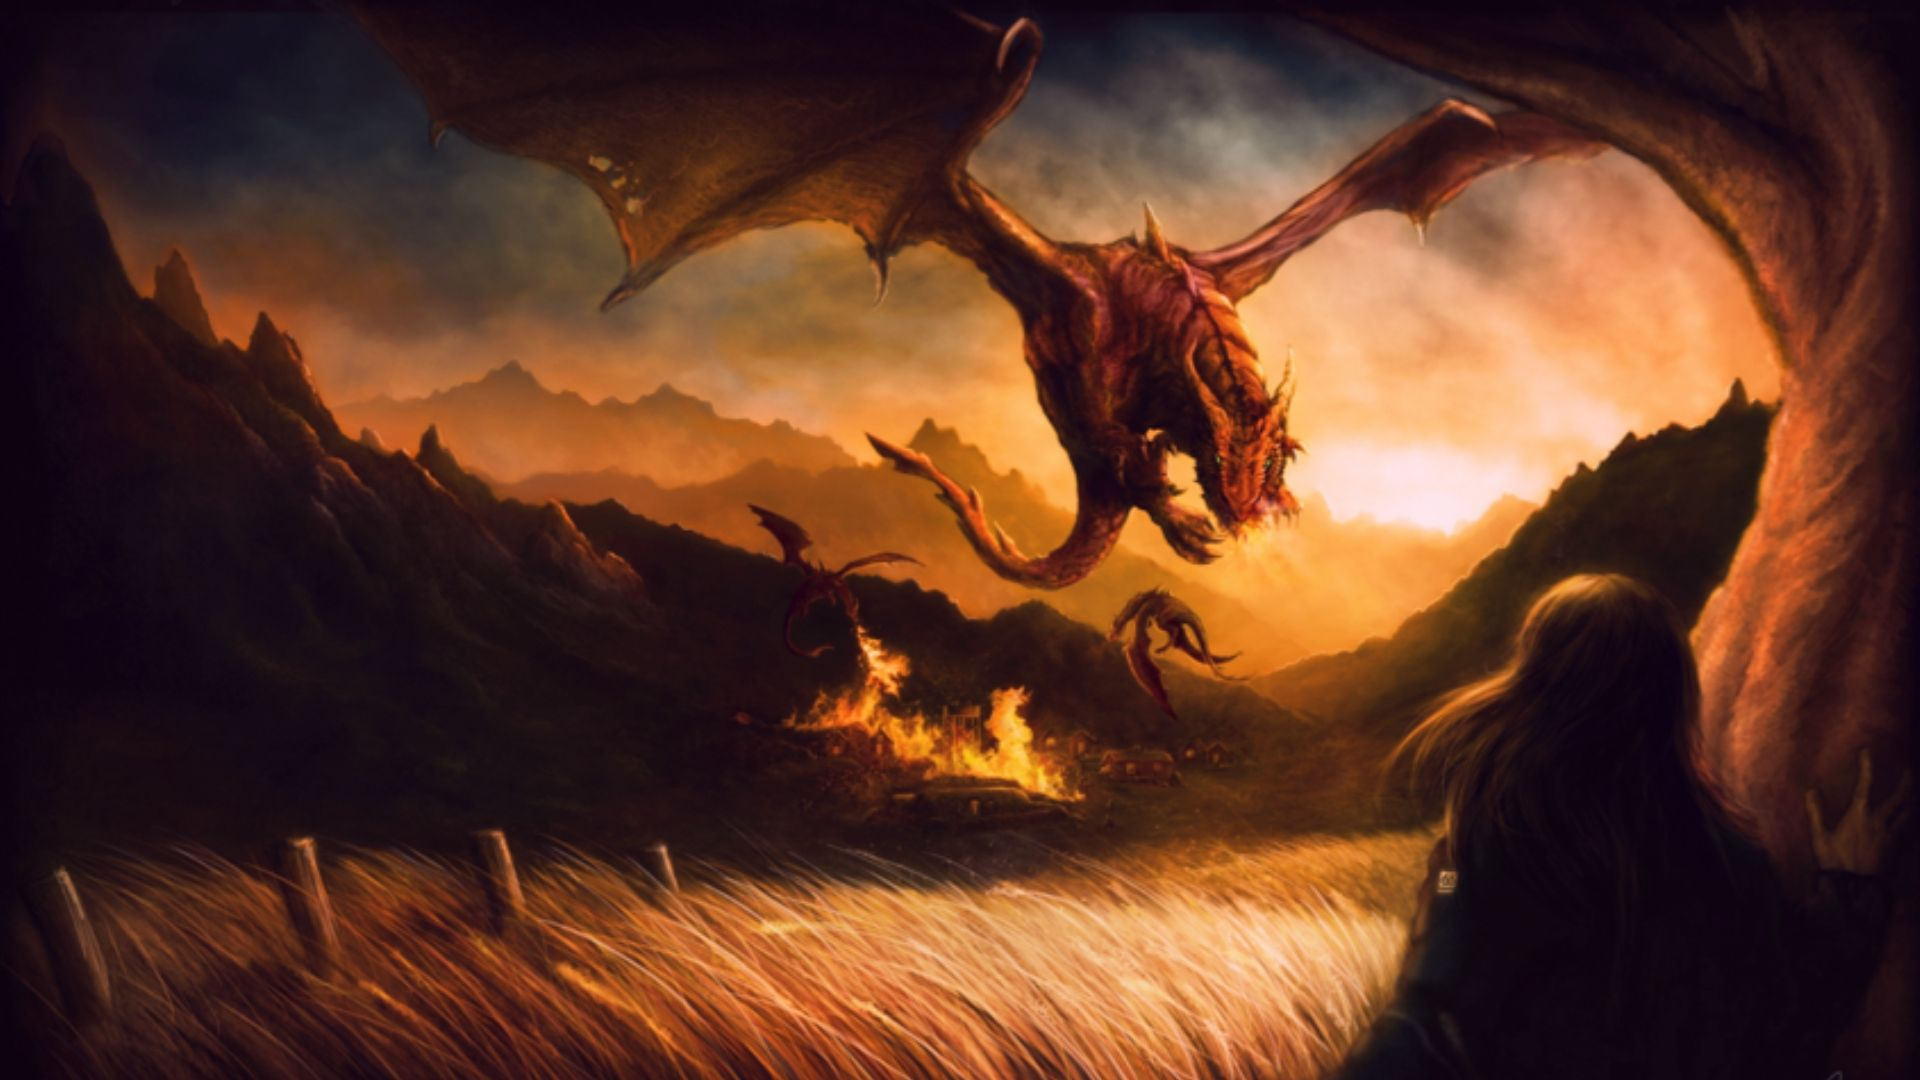 Download Fire Dragon Wallpapers Widescreen For Free Wallpaper Monodomo Fire Dragon Dragon City Dragon Artwork